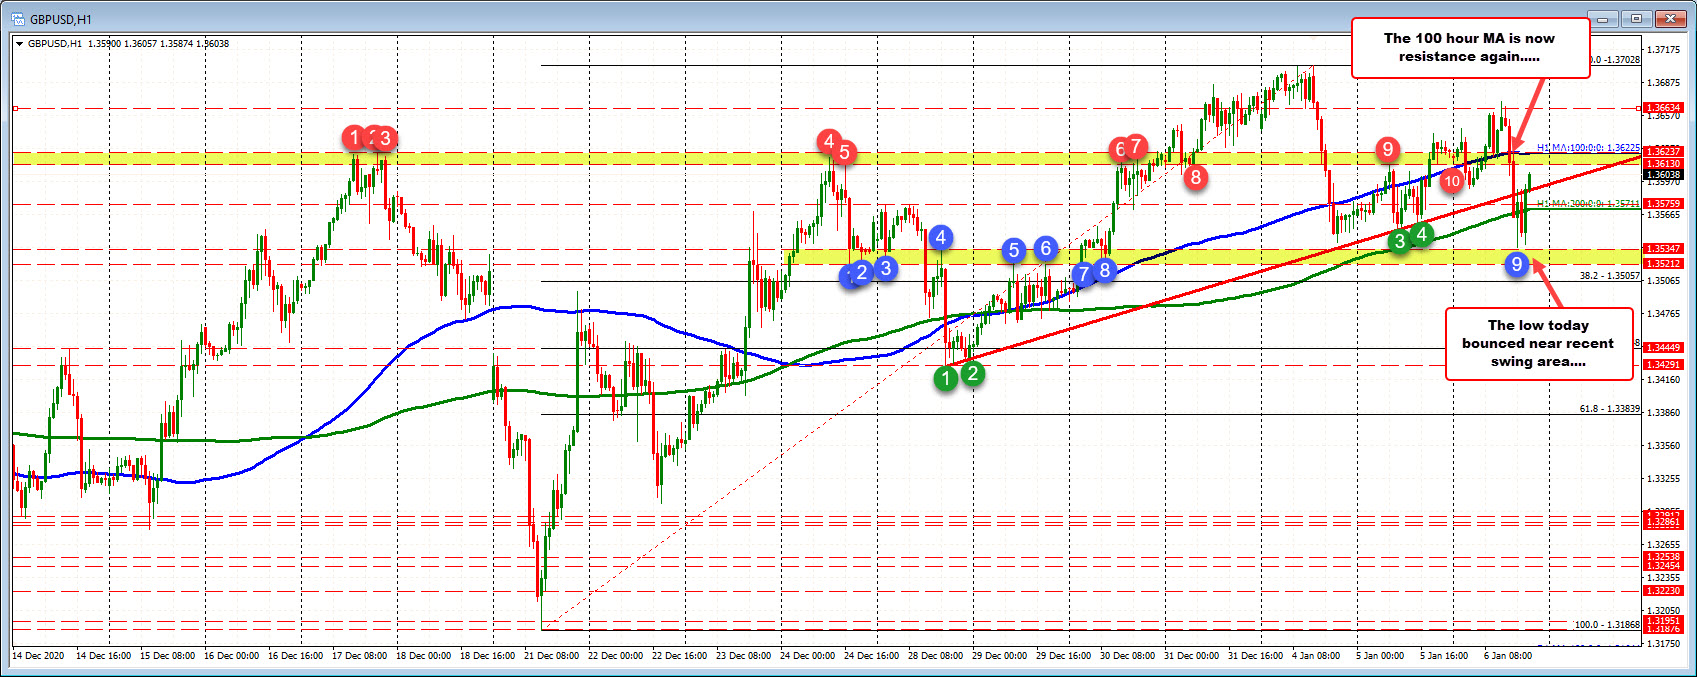 GBPUSD bounces back after press to a new week low fails